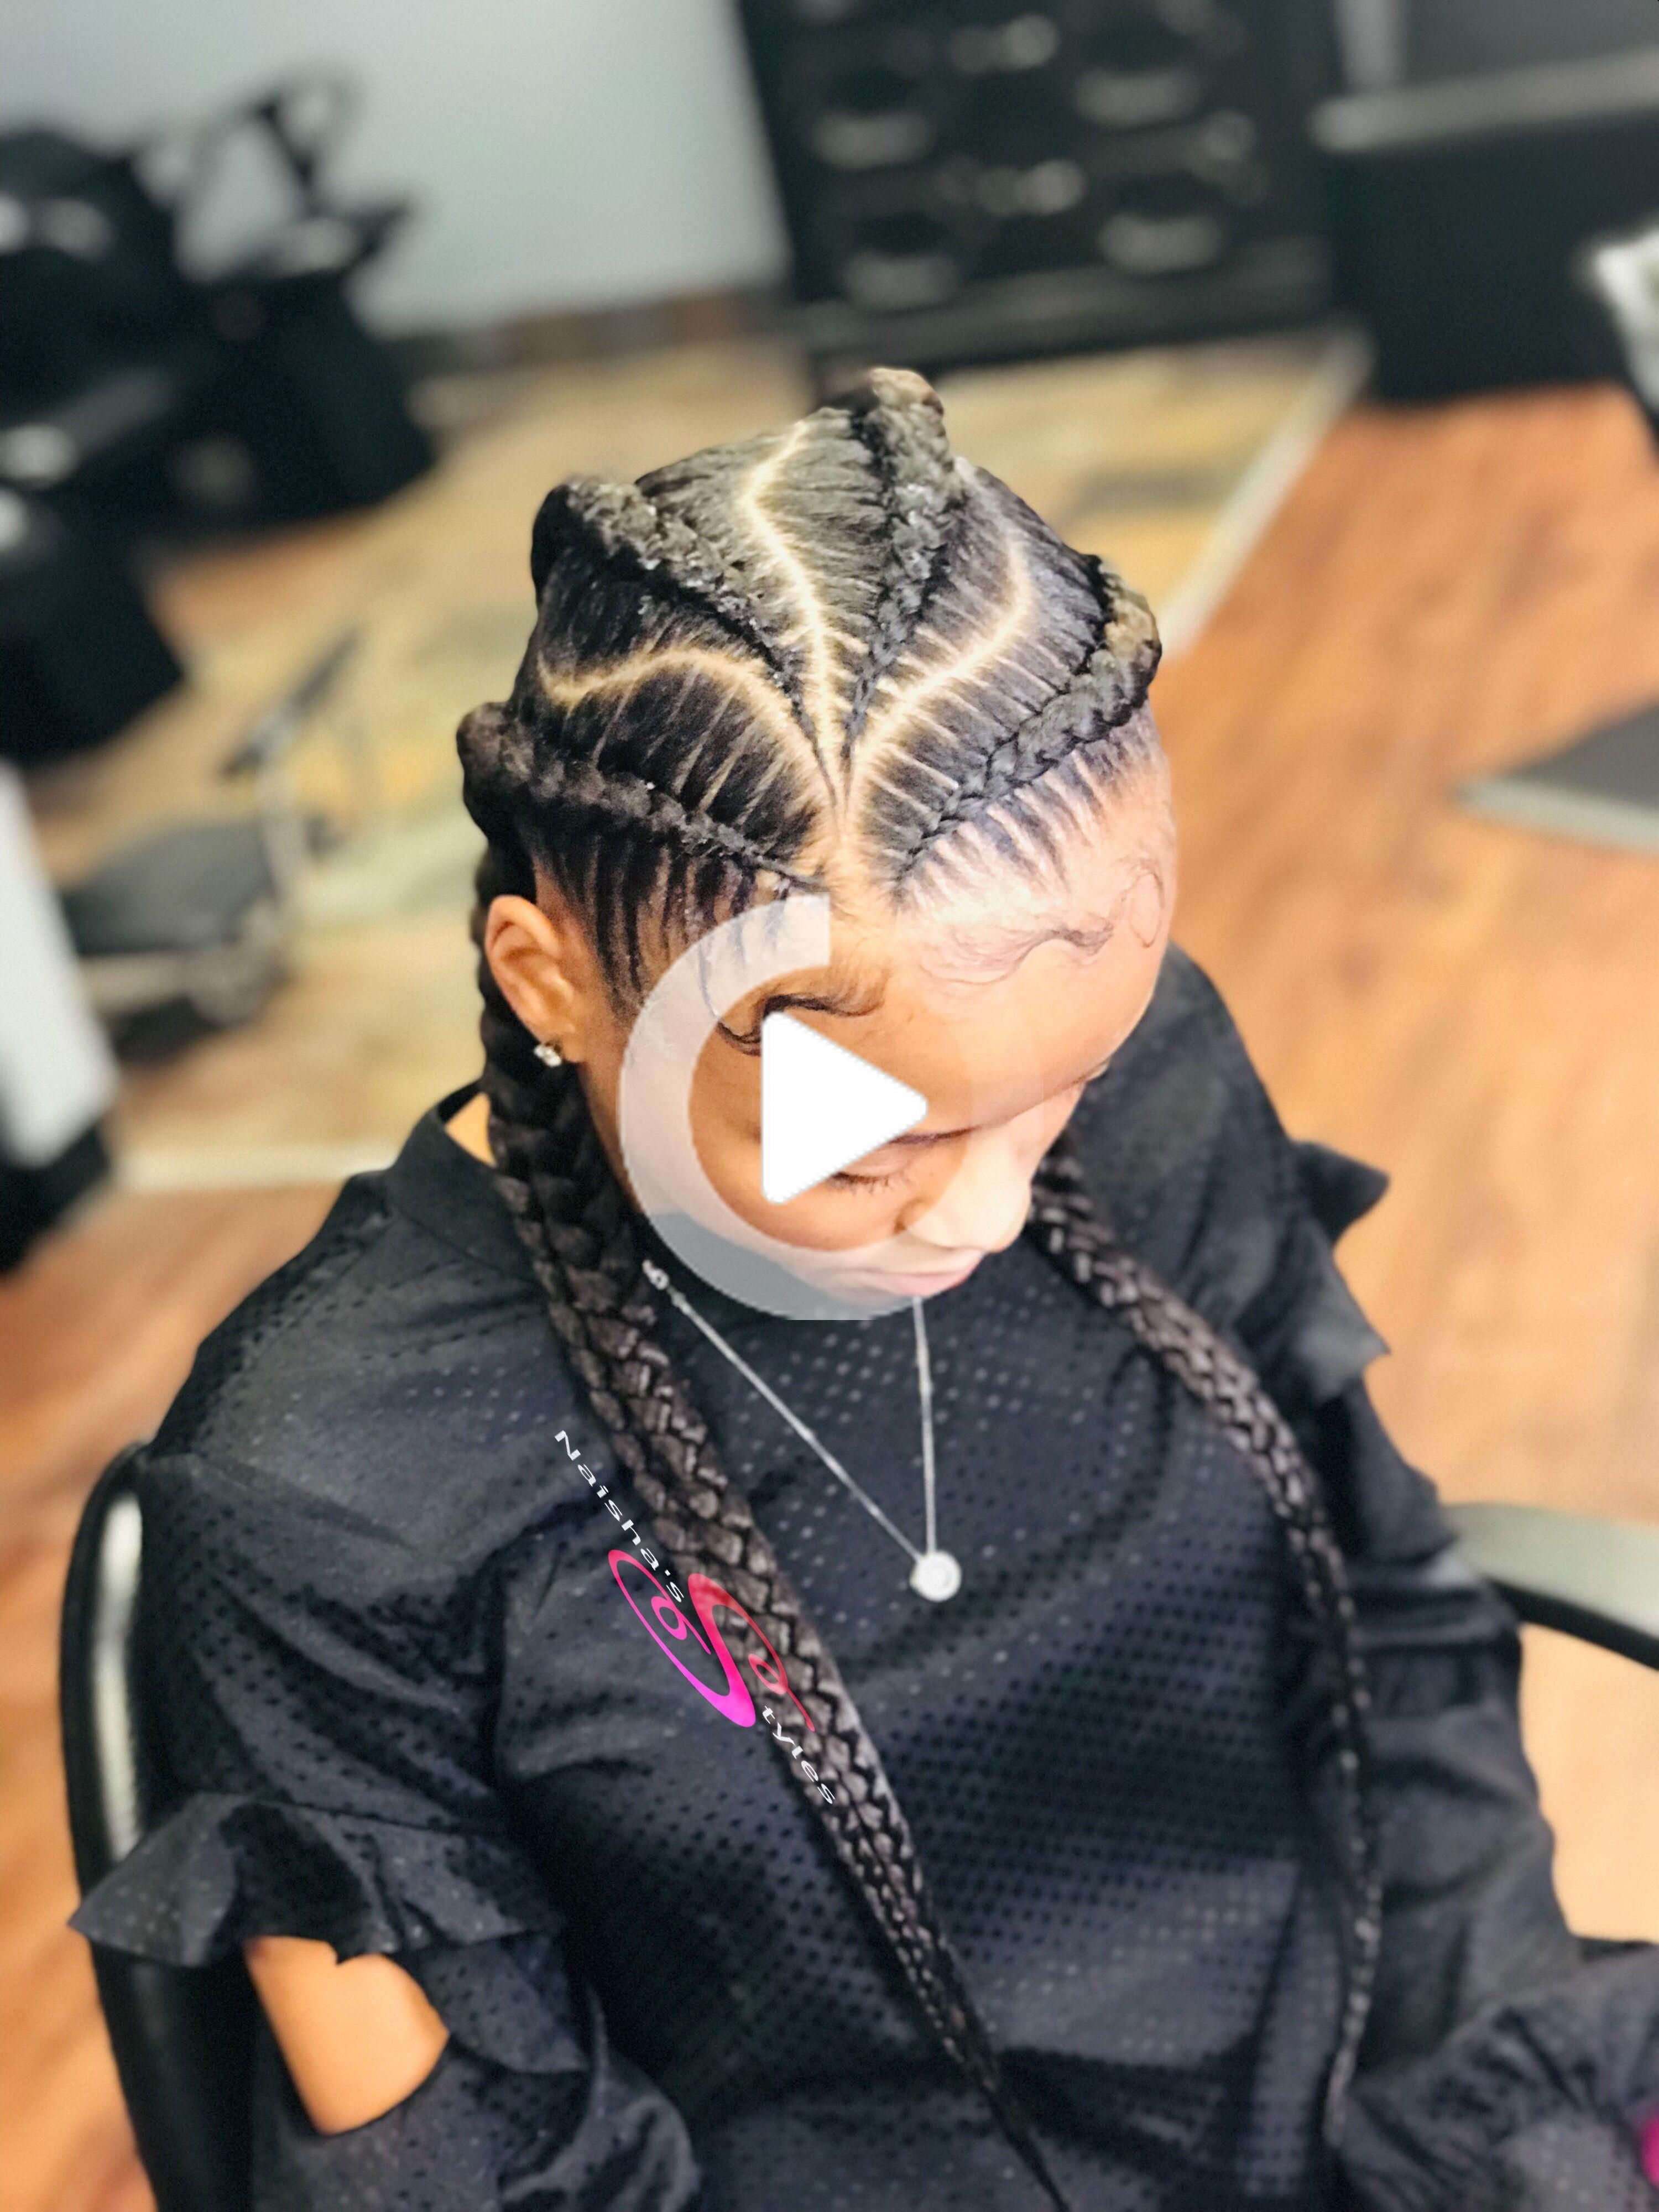 Pin On Braided Hairstyles Feed In Braids Hairstyles Braided Hairstyles Braided Cornrow Hairstyles